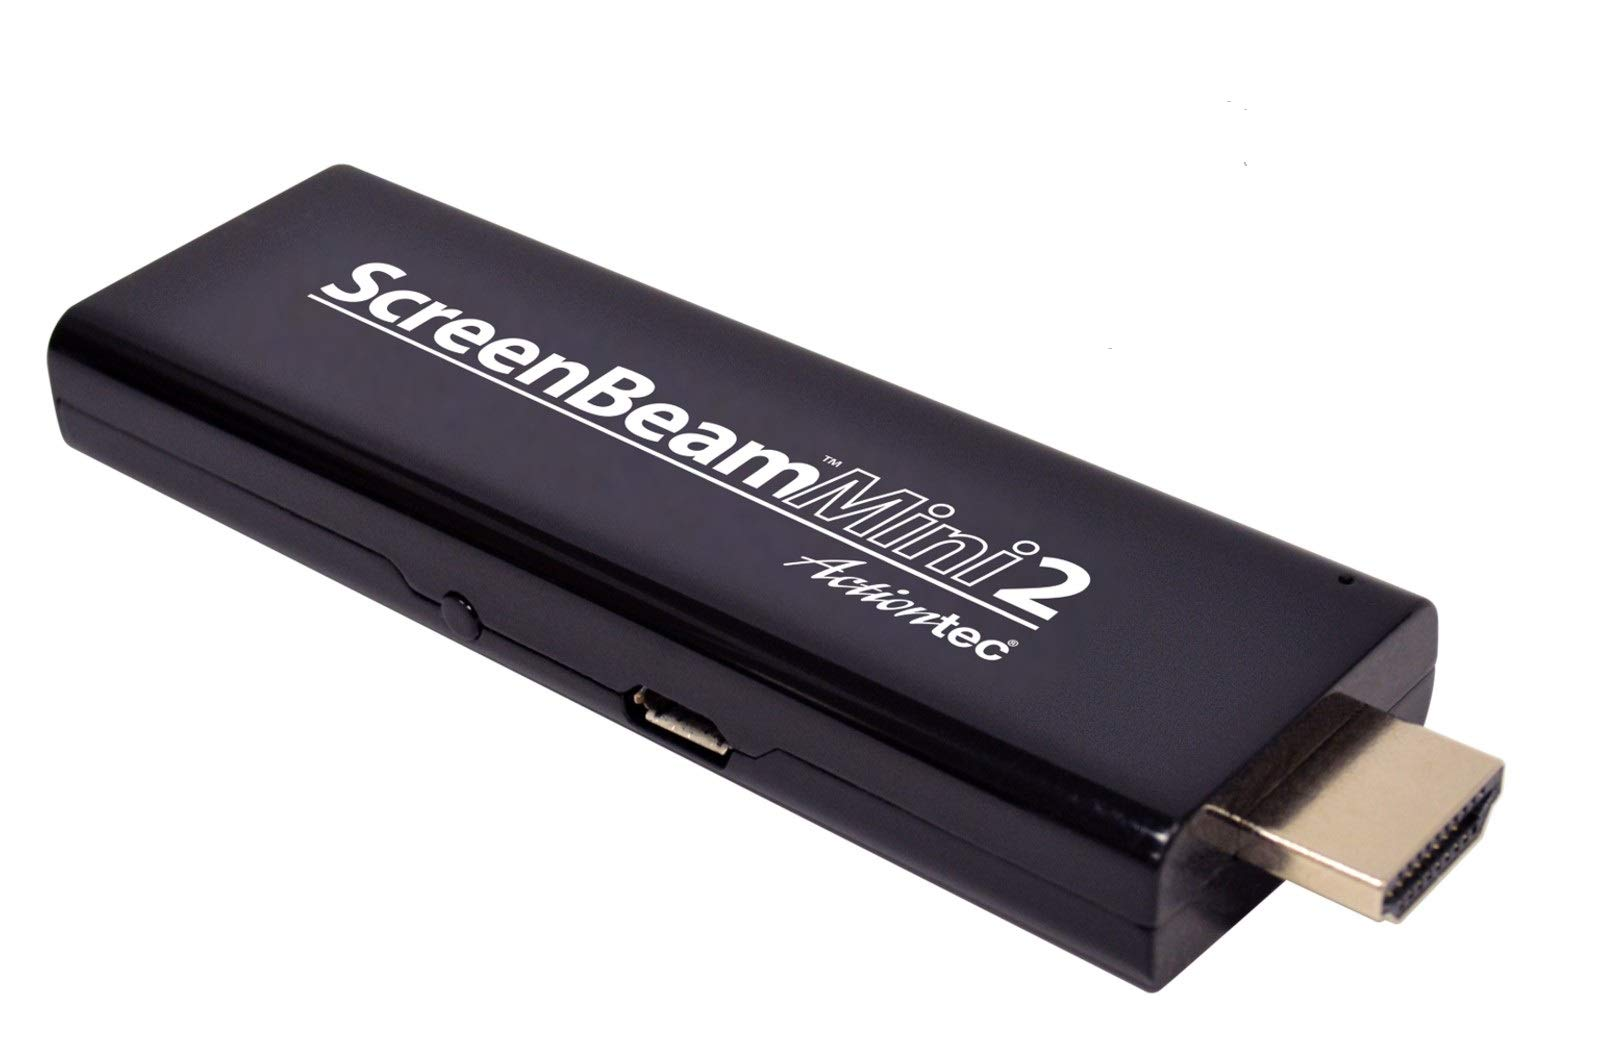 Actiontec Screenbeam Mini2 Mobile Wireless Display Receiver by Actiontec